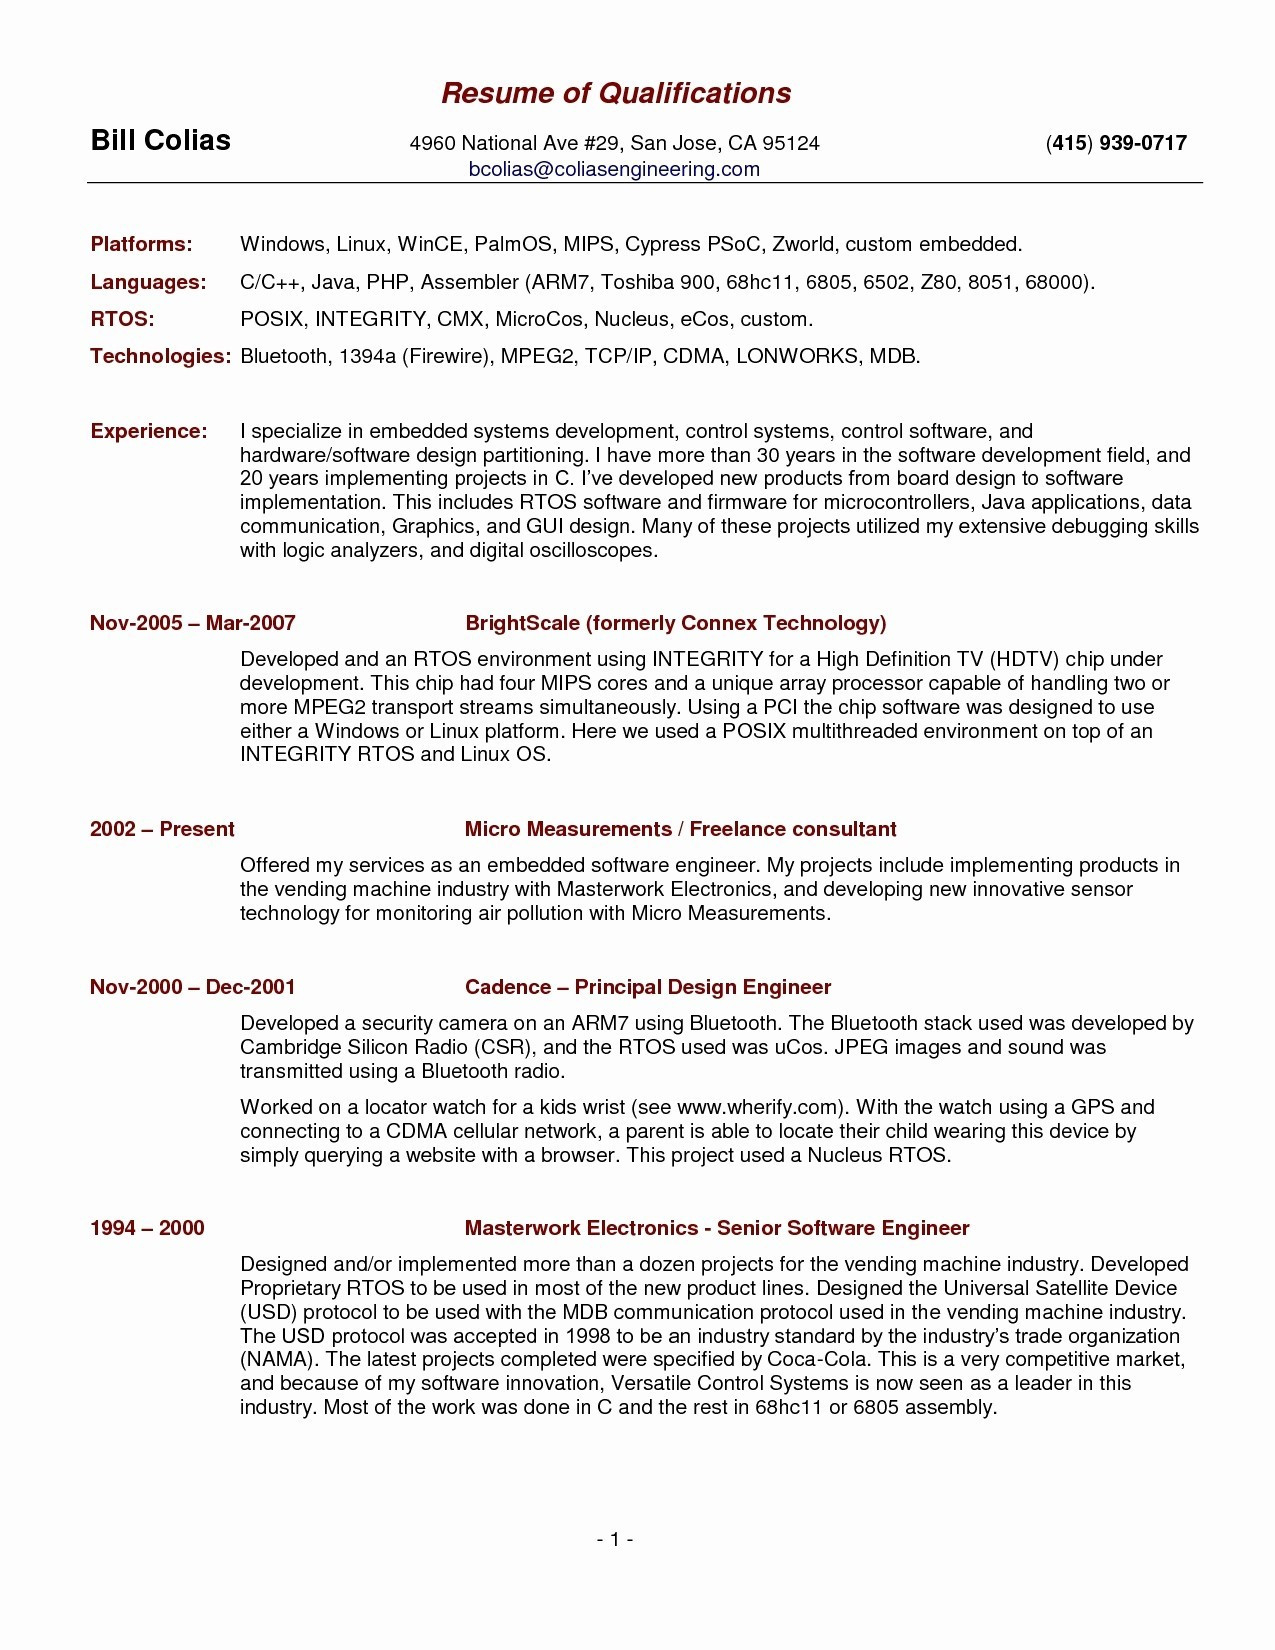 Teacher Resume Template Download - Popular Free Teacher Resume Templates Download Vcuregistry